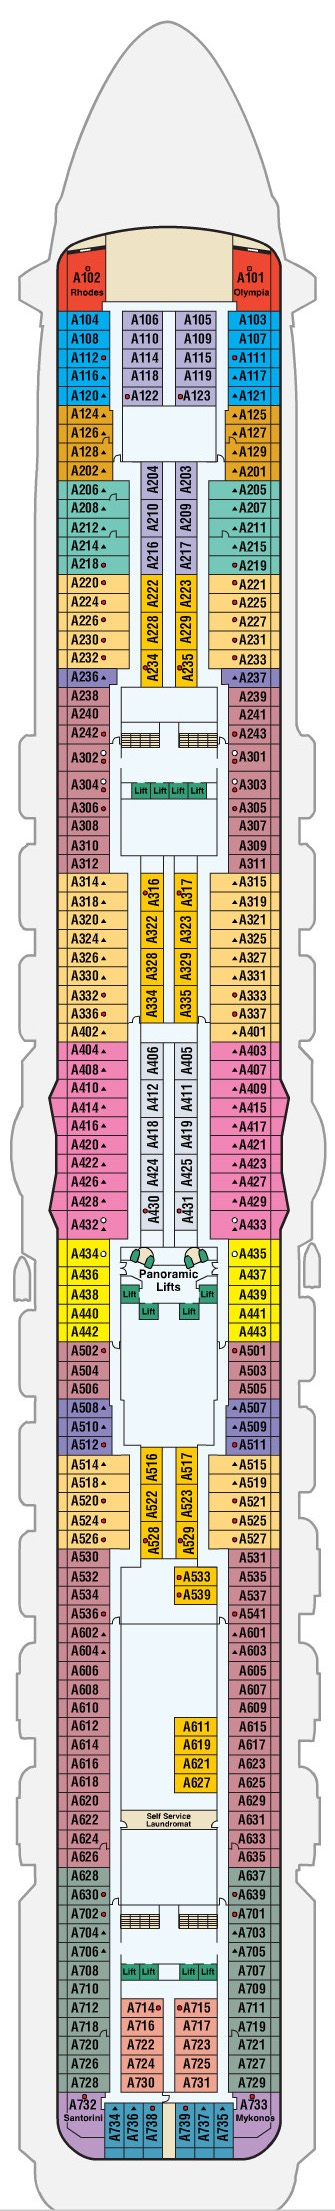 Regal Princess Deck 12 - Aloha layout